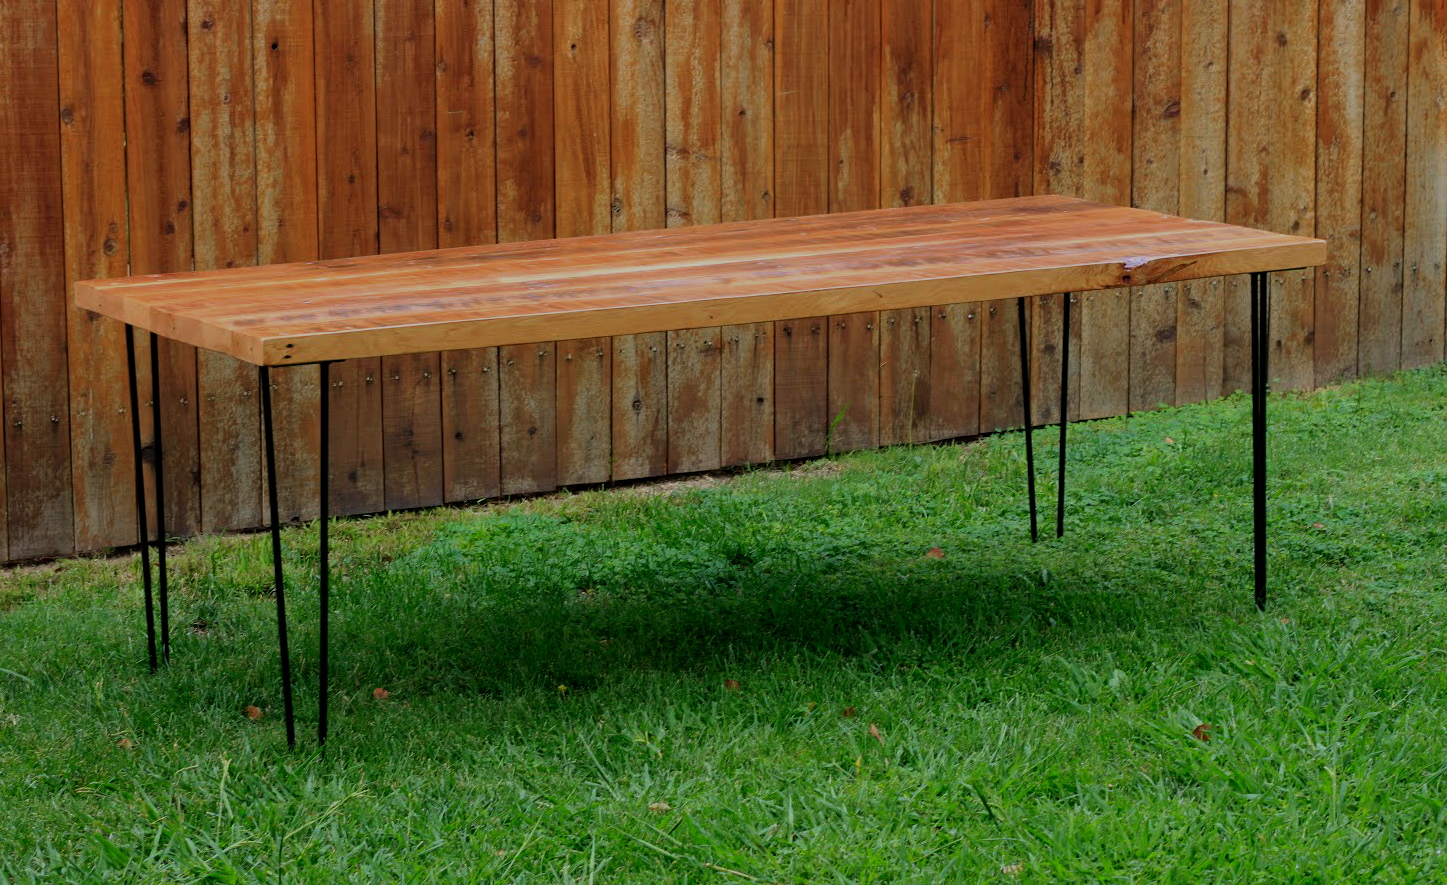 Bench Dining Tables: Reclaimed Wood Furniture: Outdoor Dining